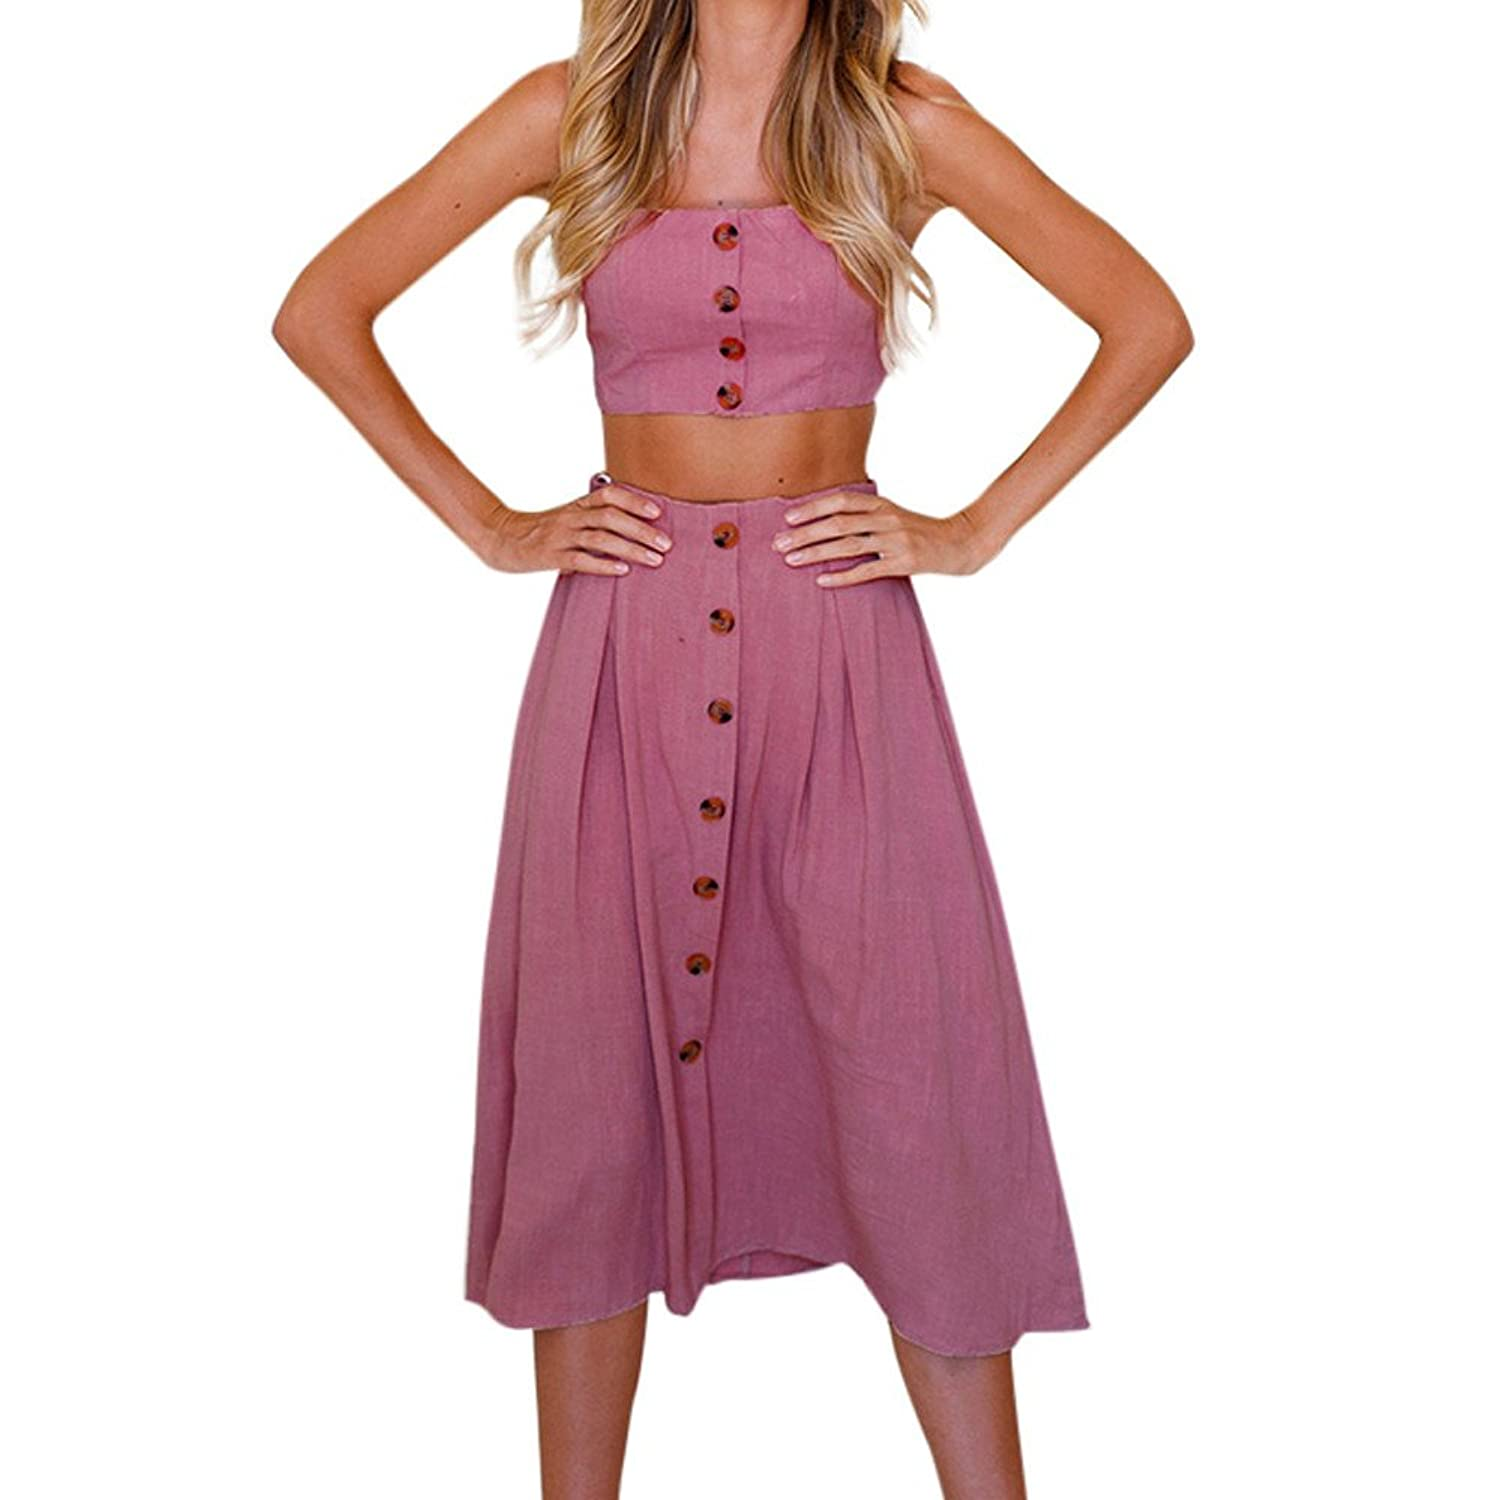 e973b263b35 Dress Type Fit and Flare --- This dress is very useful in casual